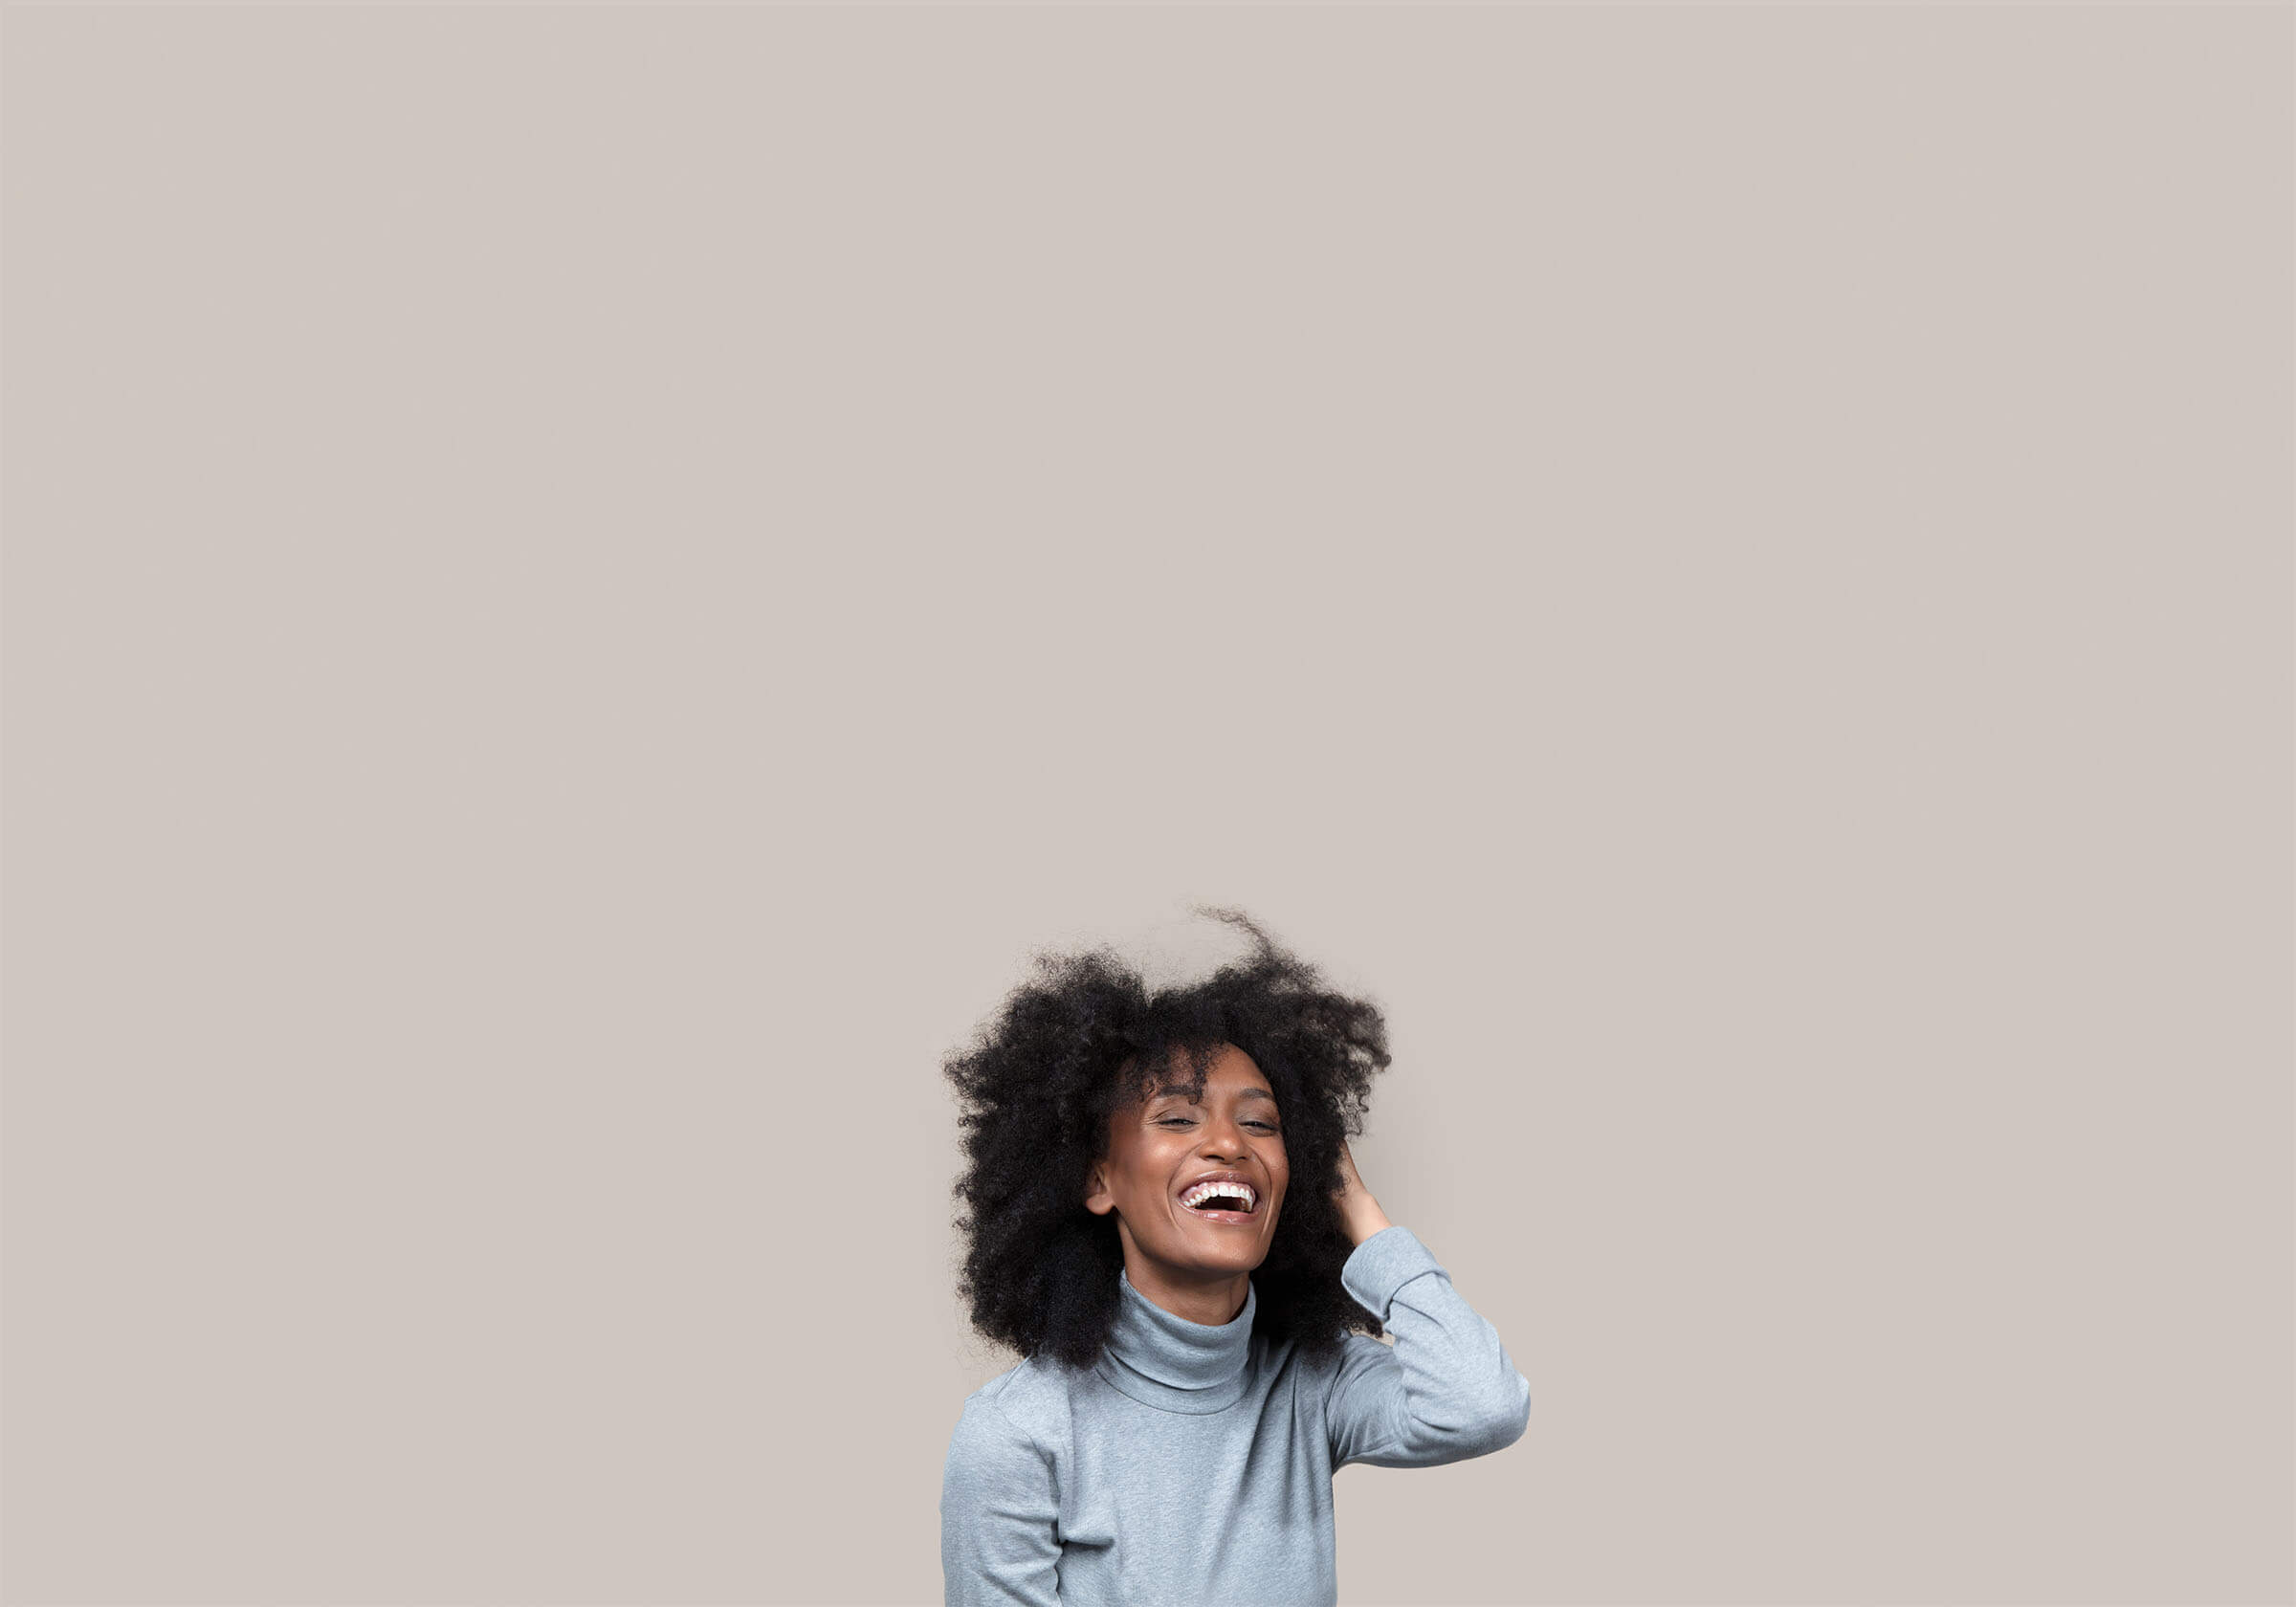 Woman laughing and brushing her hair.